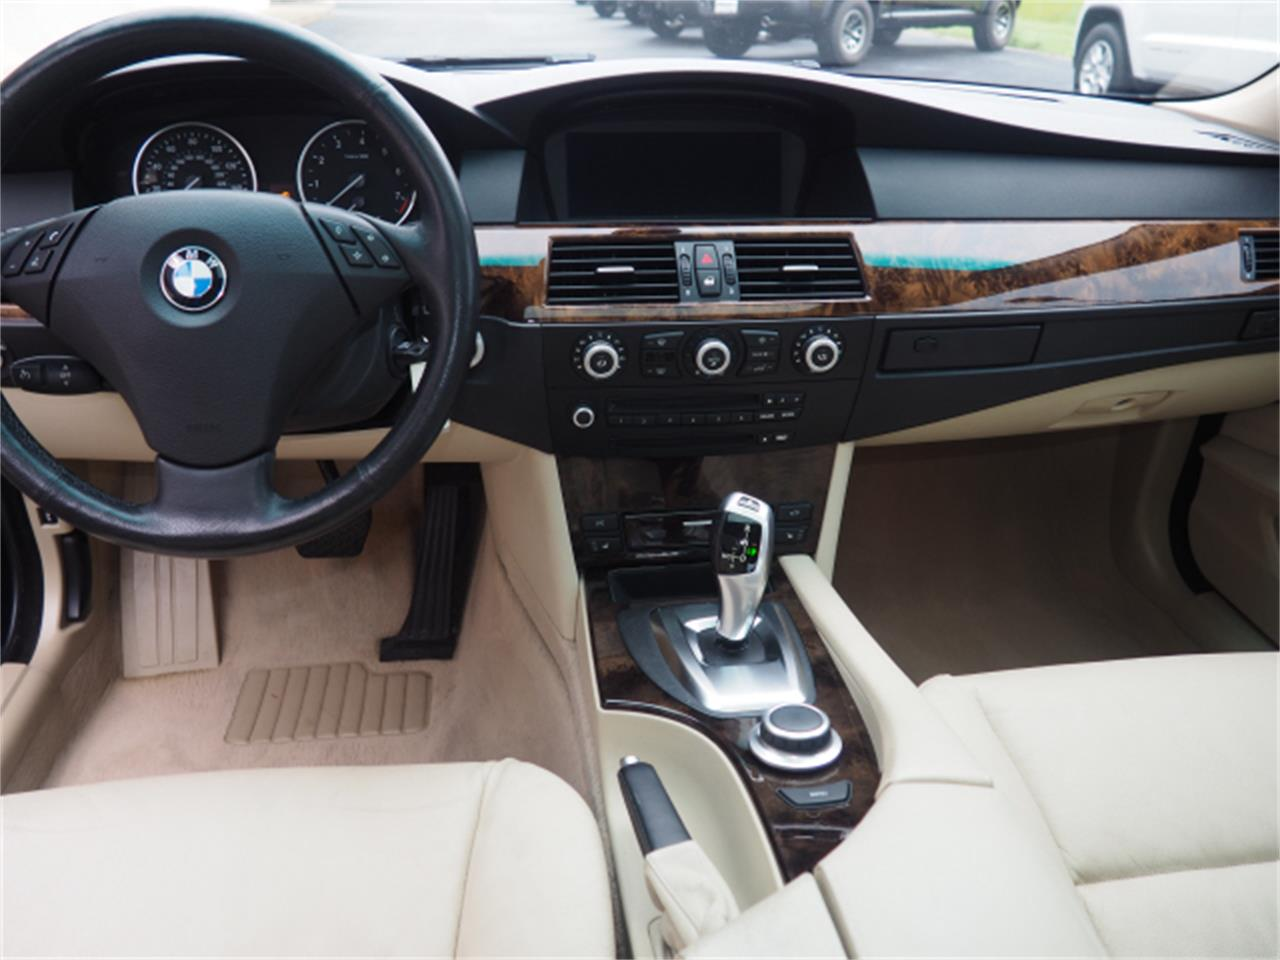 2008 BMW 5 Series (CC-1159938) for sale in Marysville, Ohio